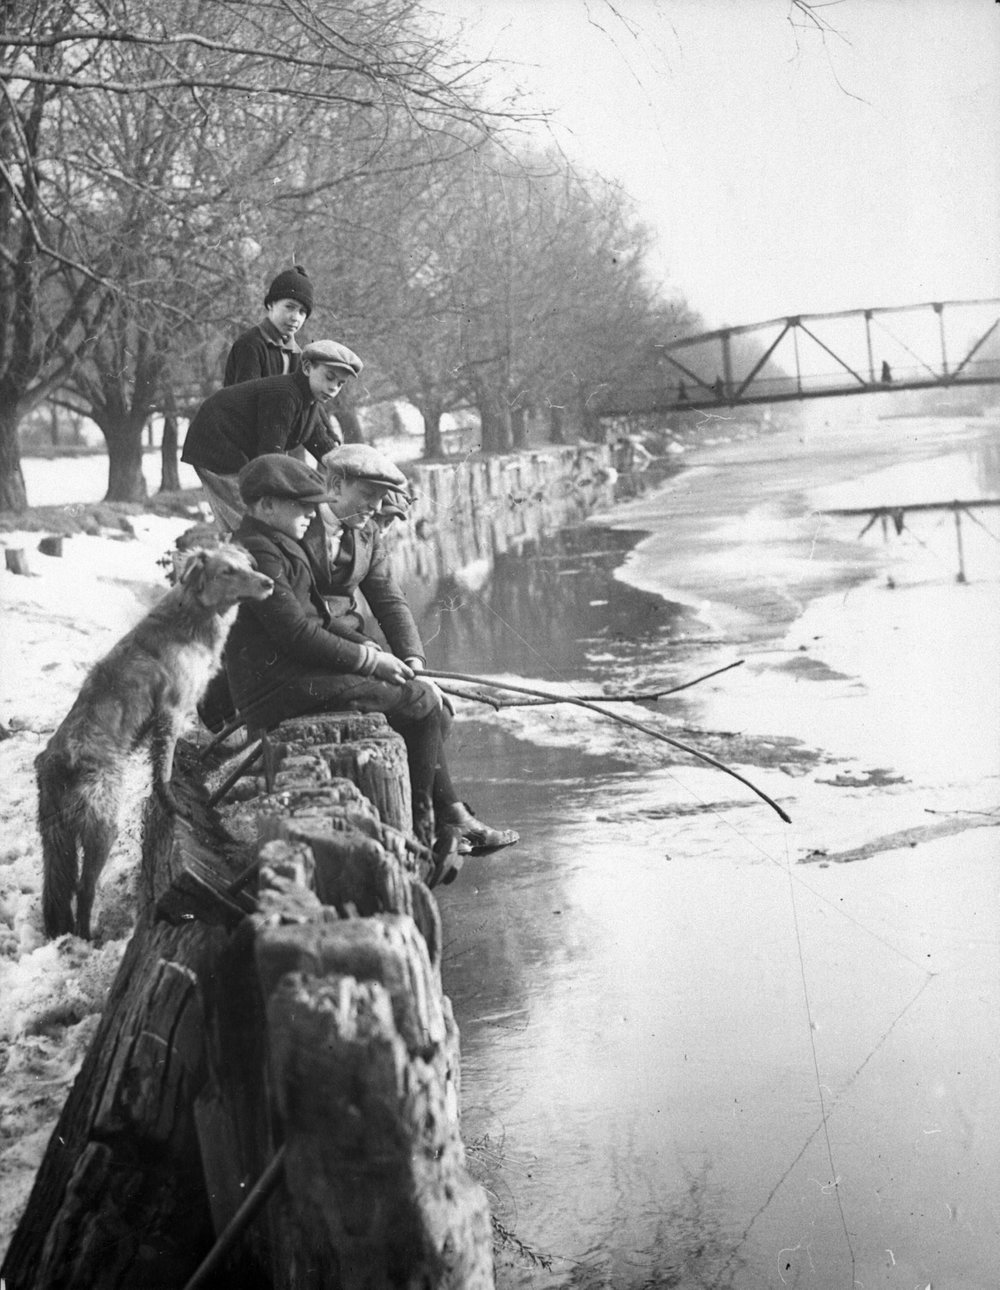 Fishing The Don River, early 20th Century